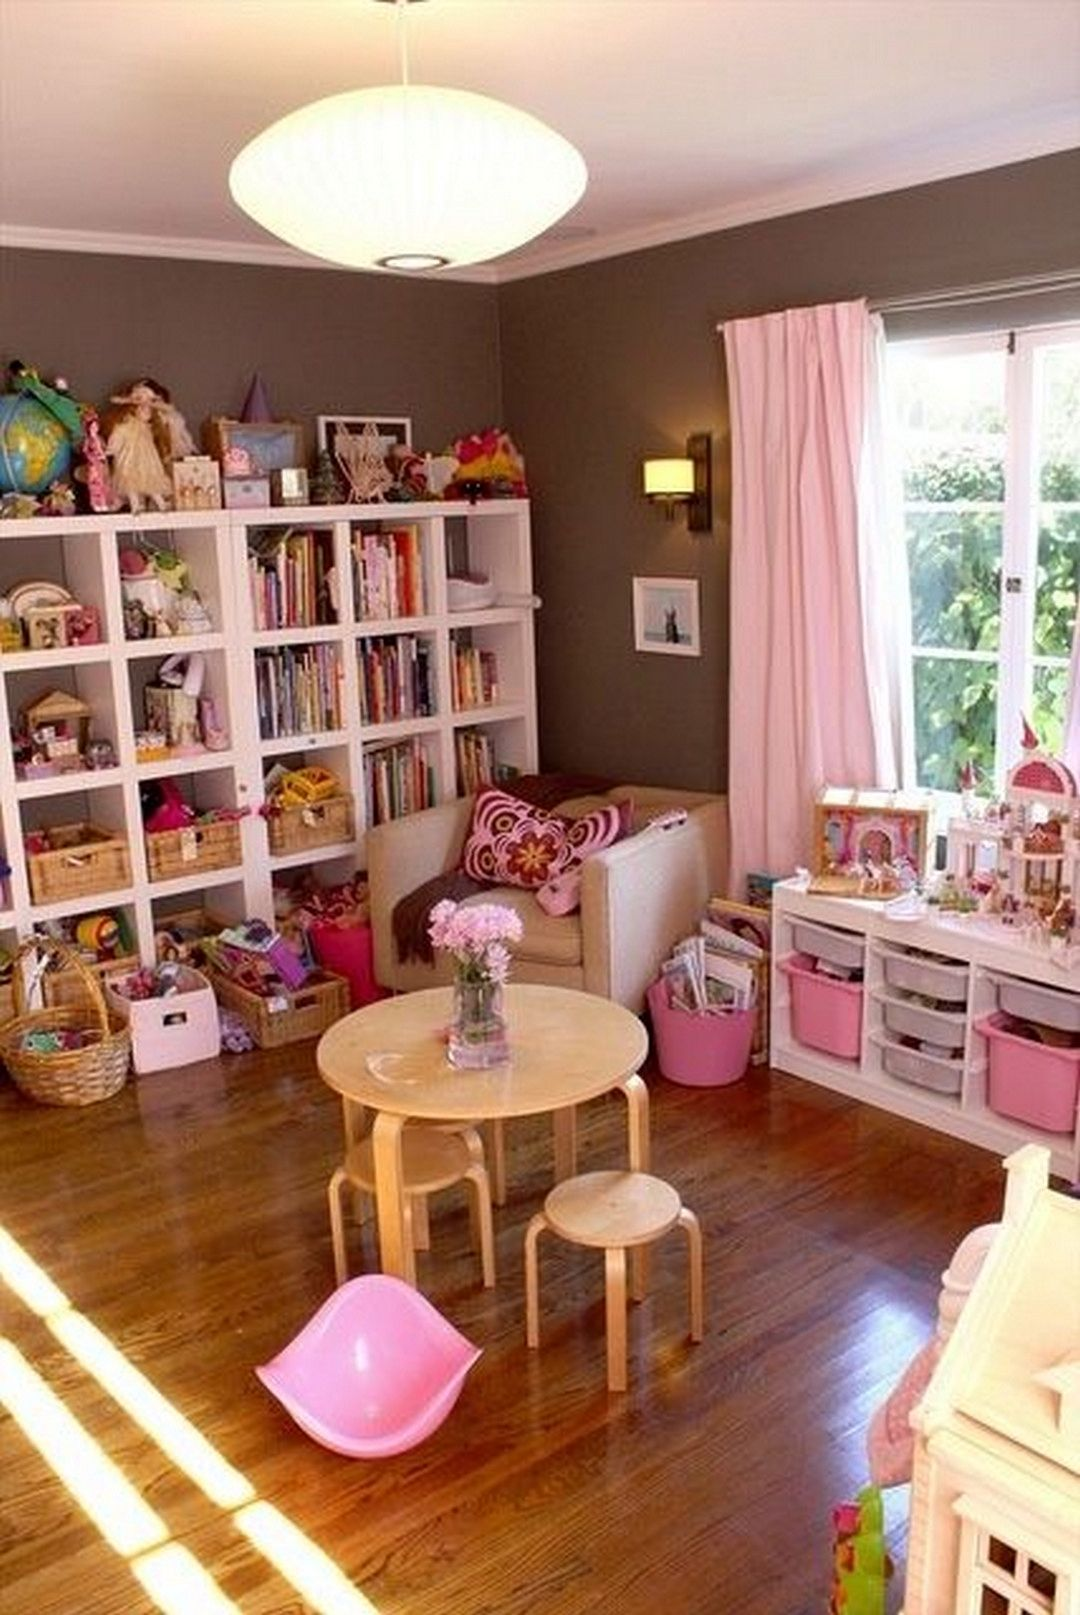 10 Creative Toy Storage Tips For Your Kids | Playroom | Sala De